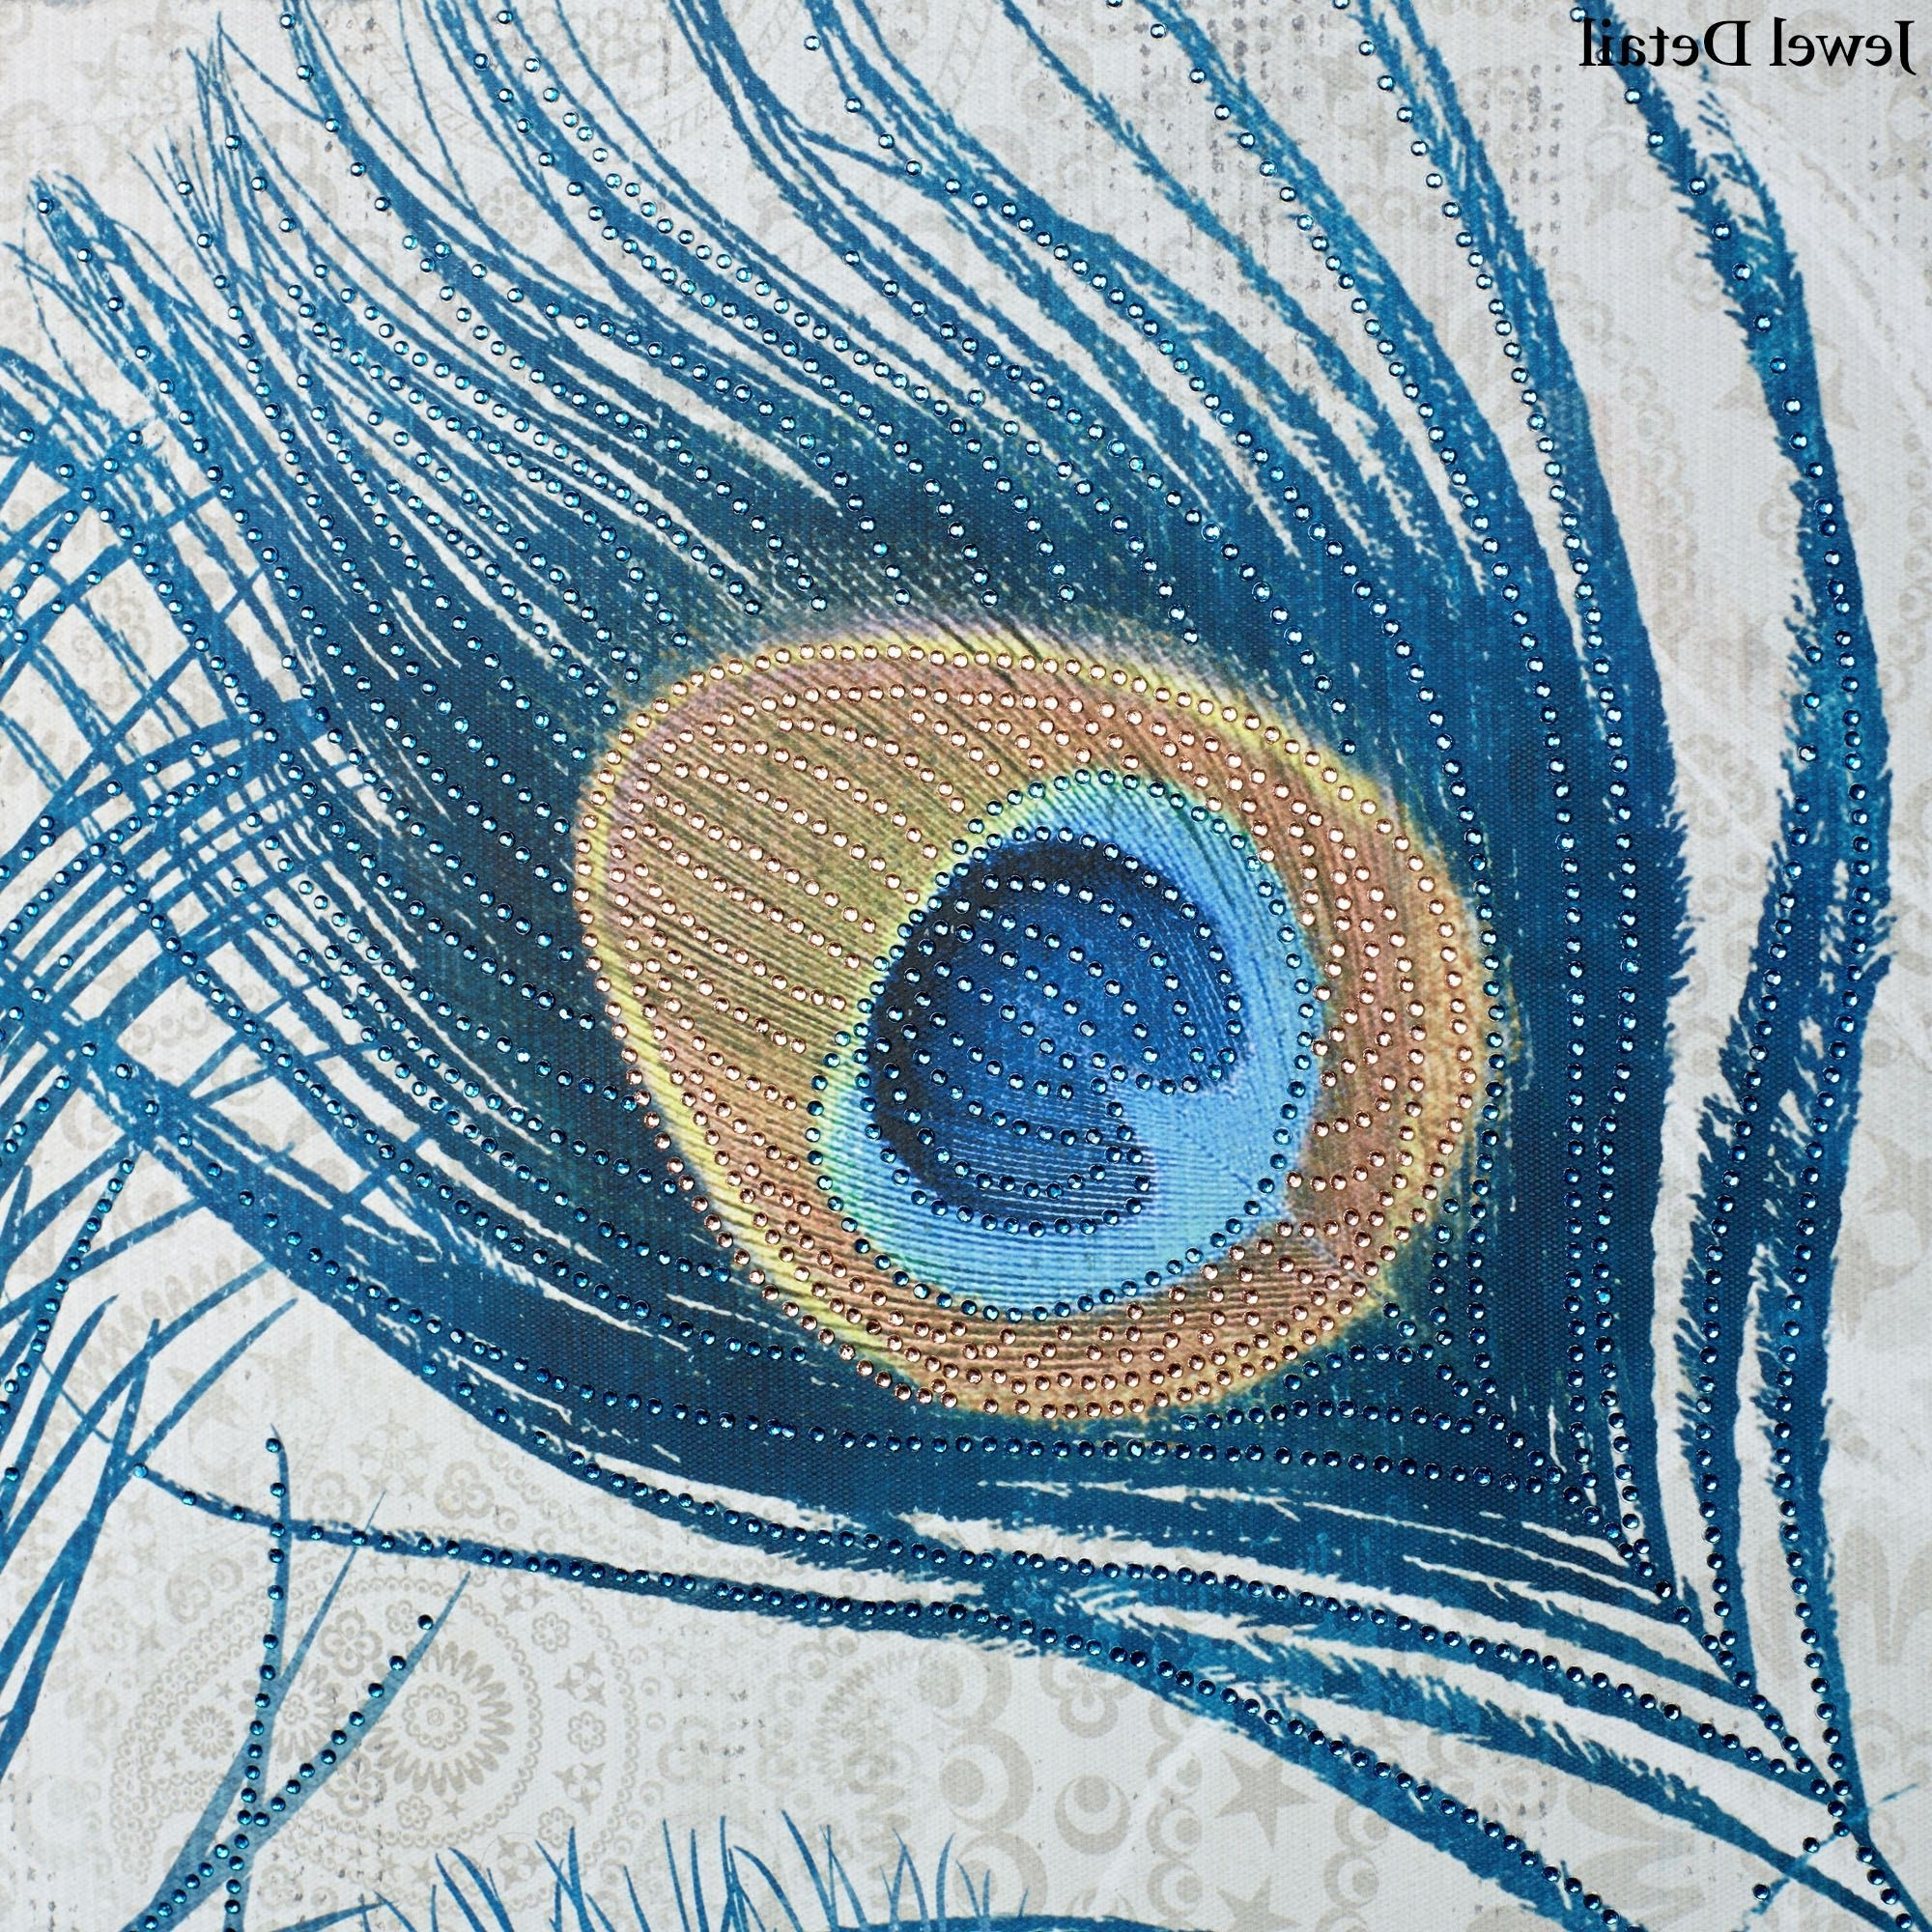 Most Recent Jeweled Peacock Wall Art In Peacock Feathers Jeweled Canvas Wall Art (View 8 of 15)